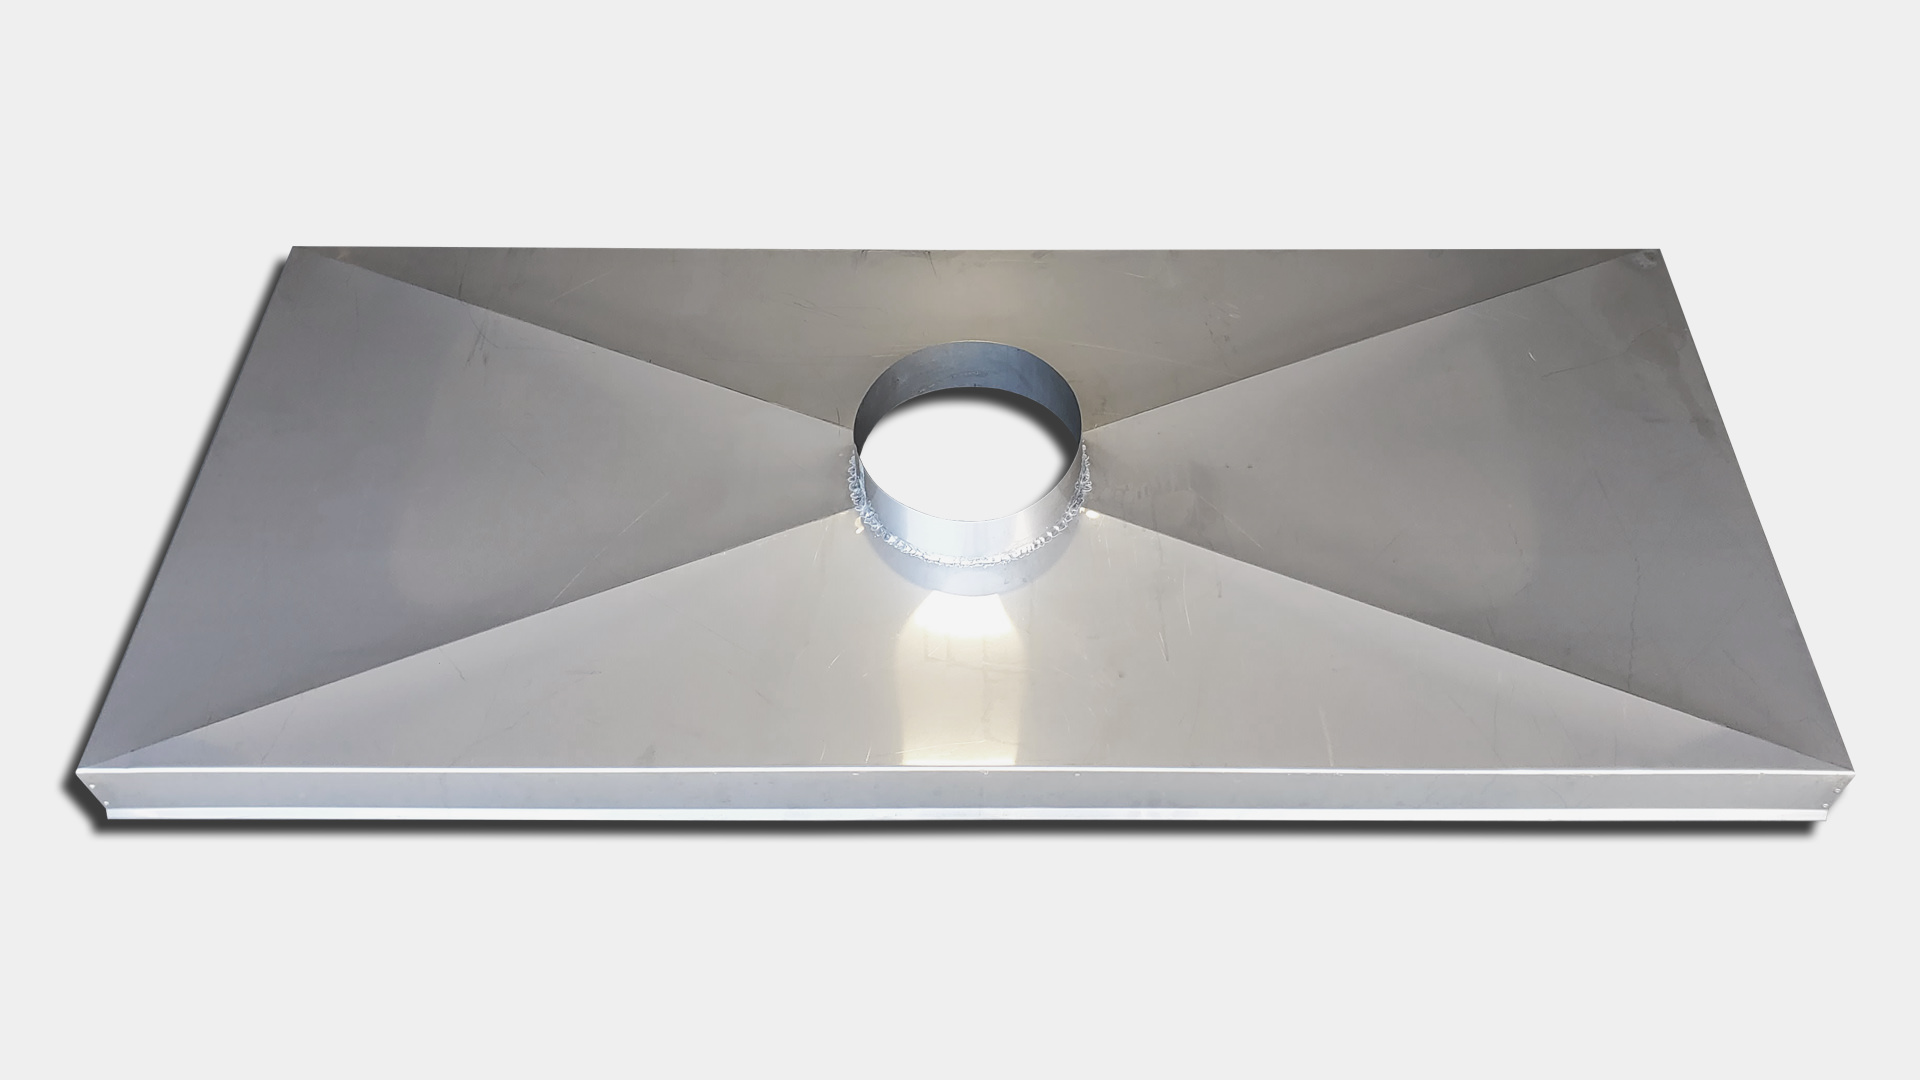 CC200 - Chimney chase cover - stainless steel - 1 flue with collar - custom